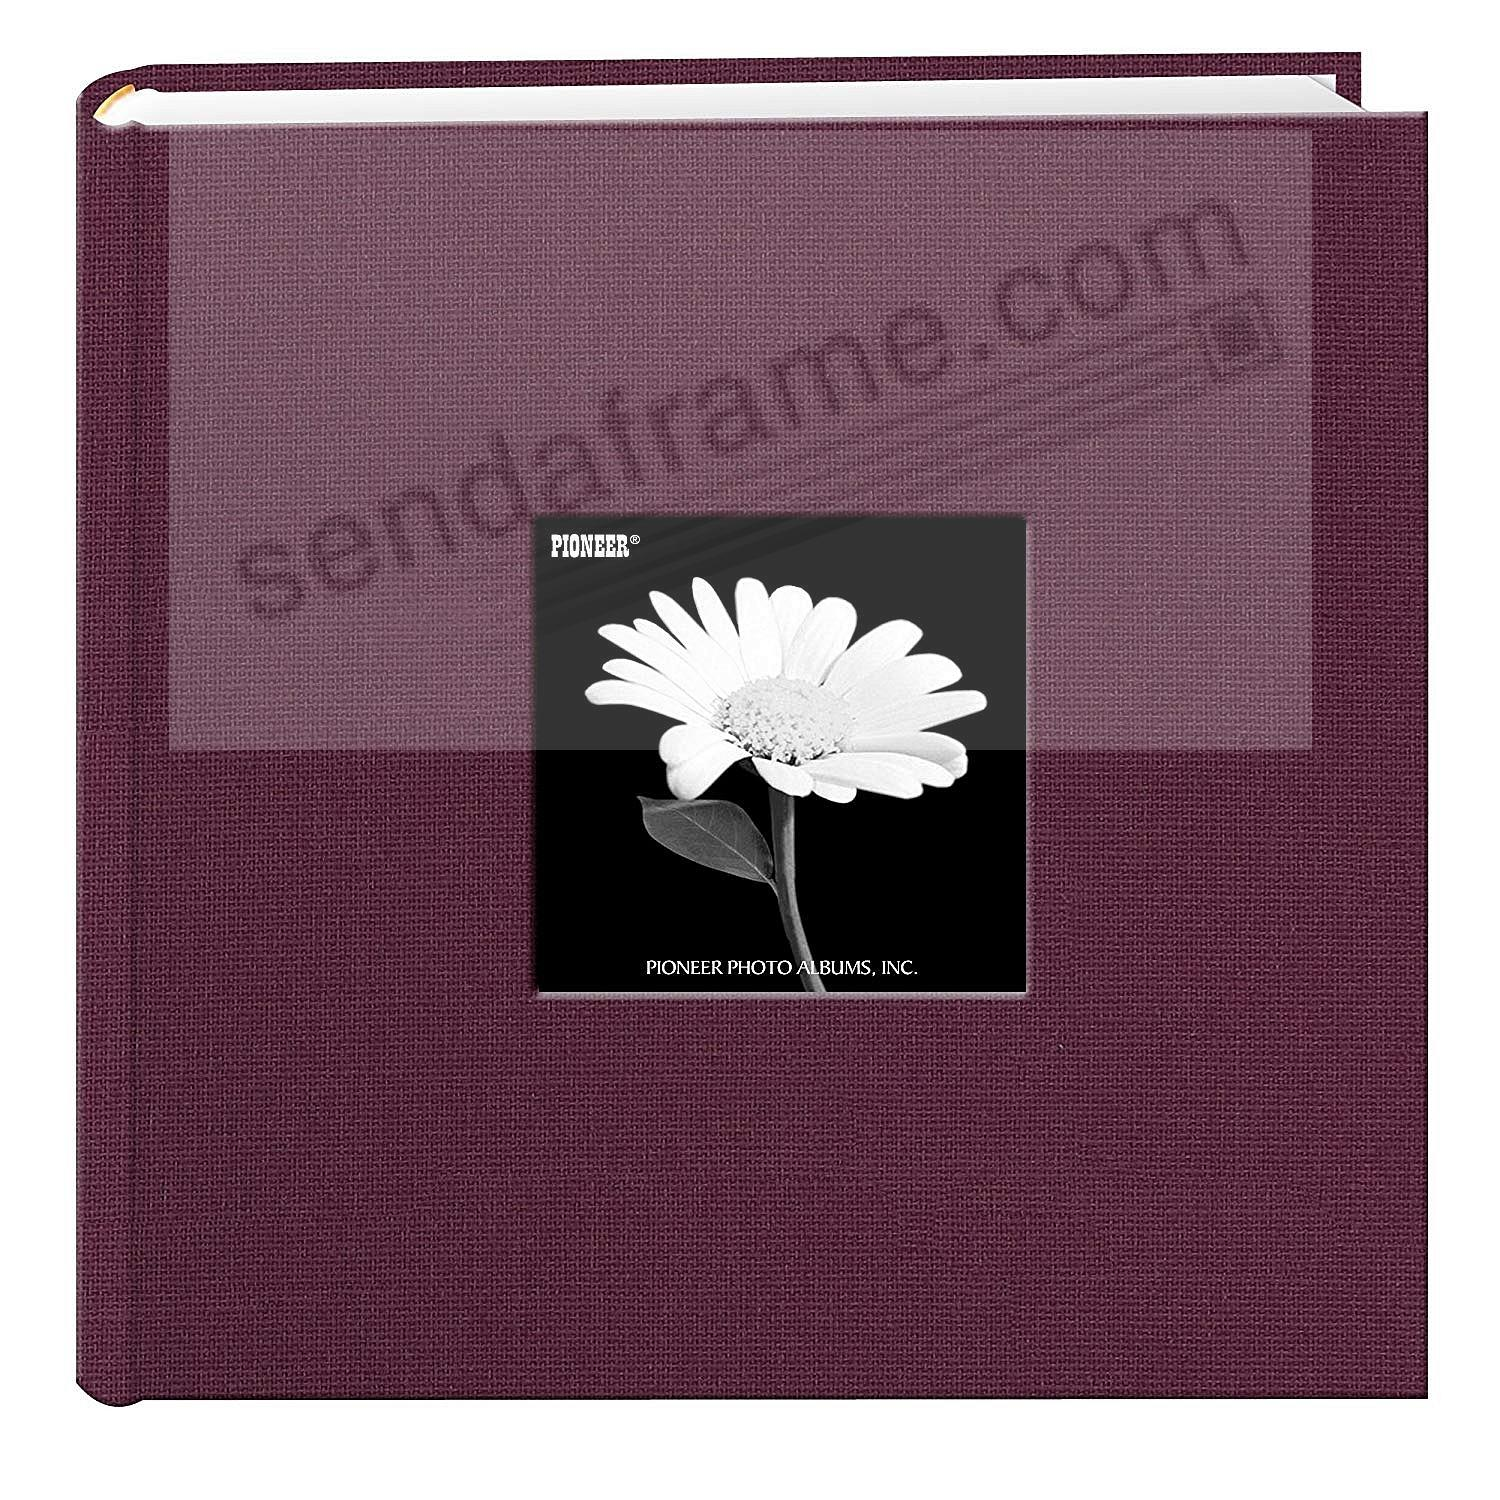 SWEET PLUM Cloth 2-up frame cover photo album by Pioneer®